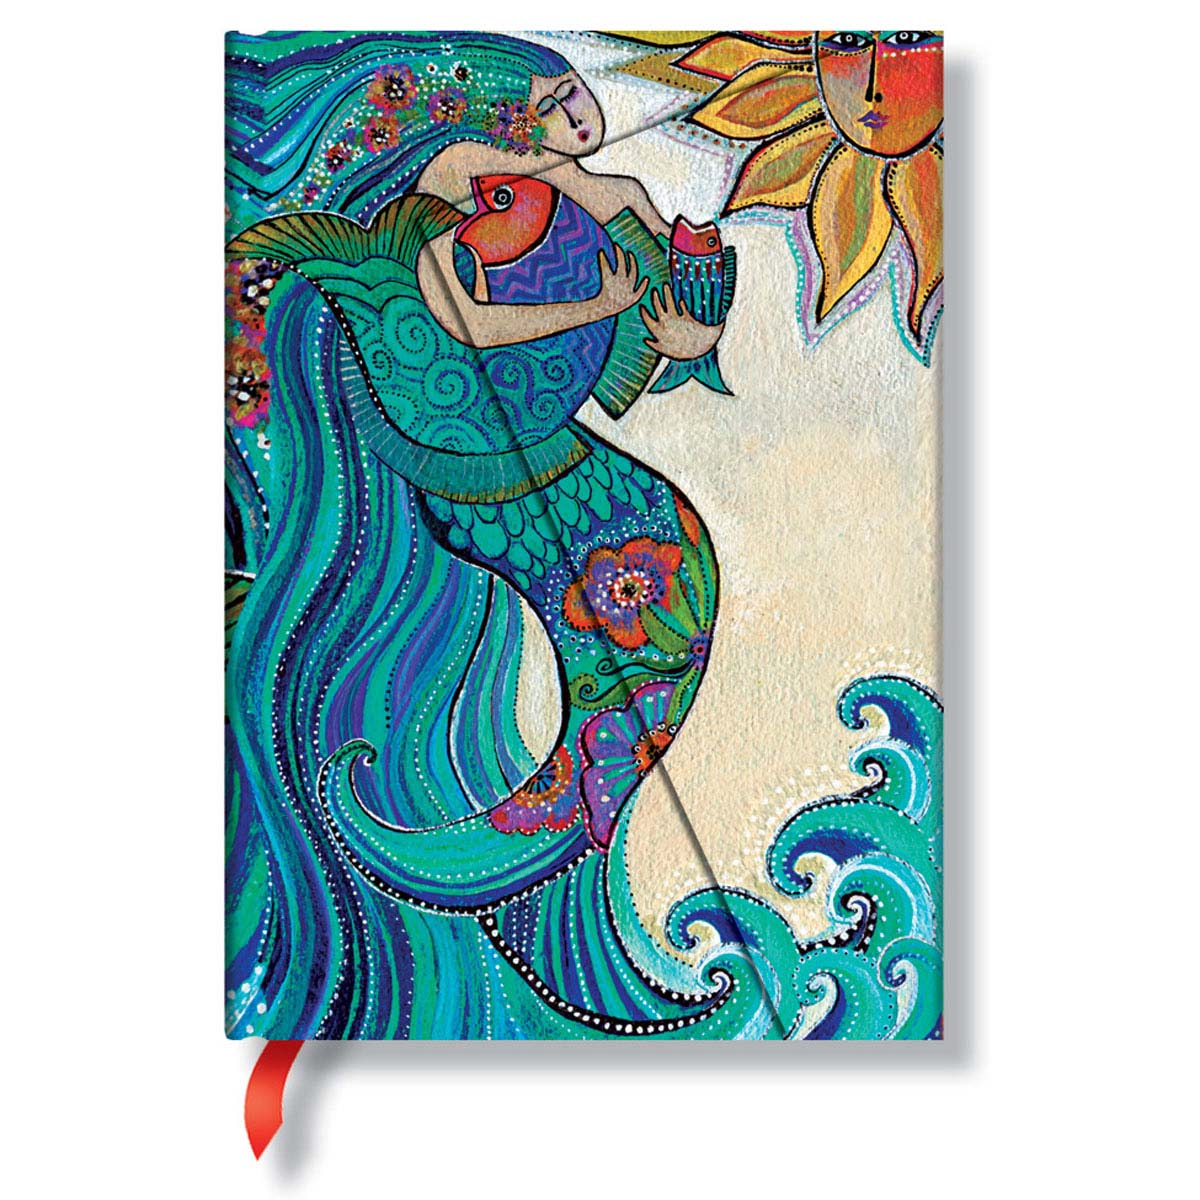 Paperblanks Laurel Burch Ocean Song Midi 5 x 7 Inch Journal